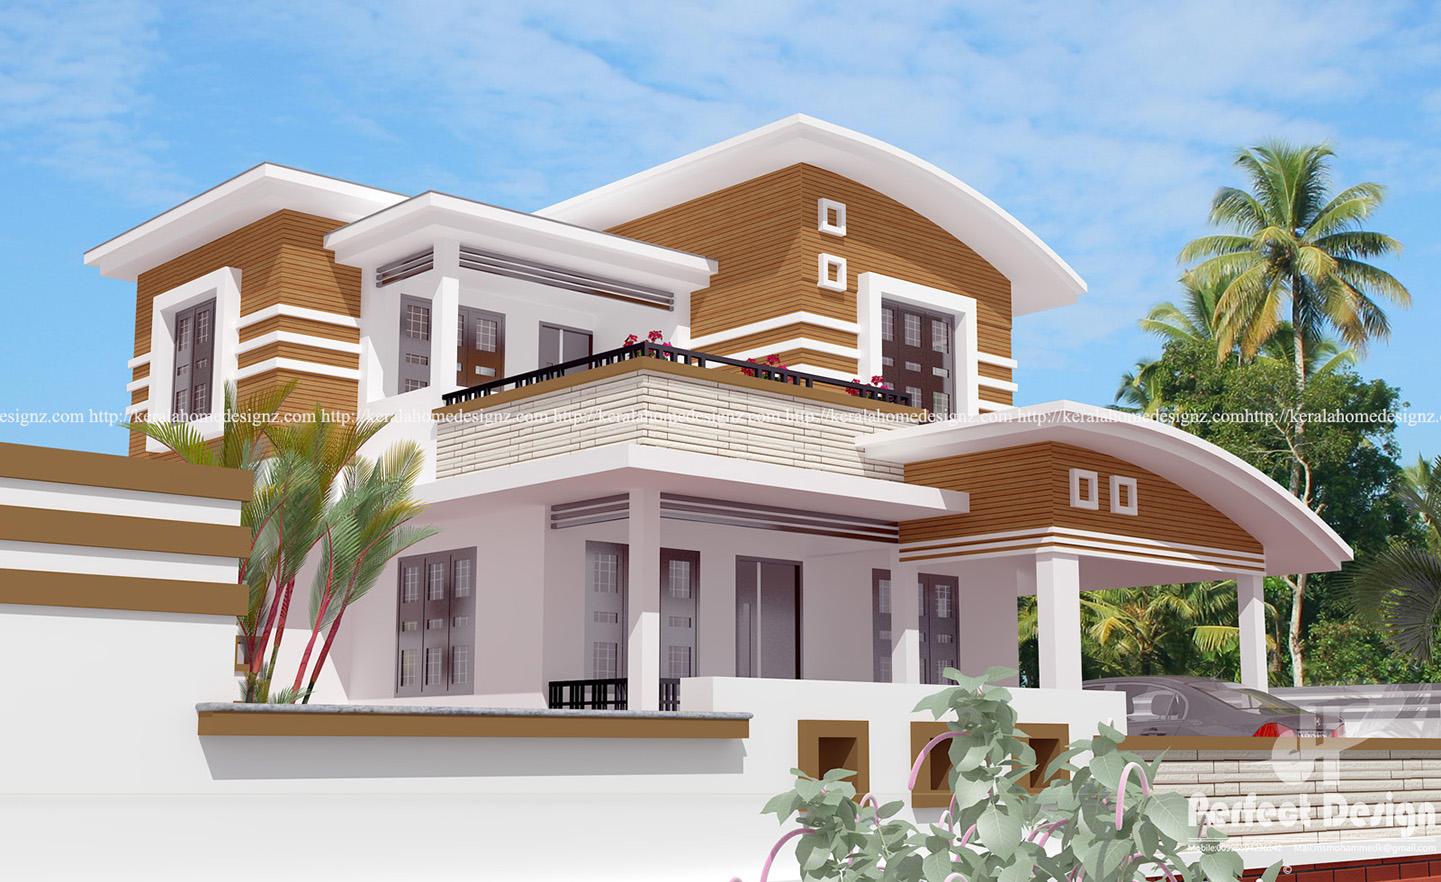 4 Bedroom Curved Roof Mix Contemporary Home Kerala Home